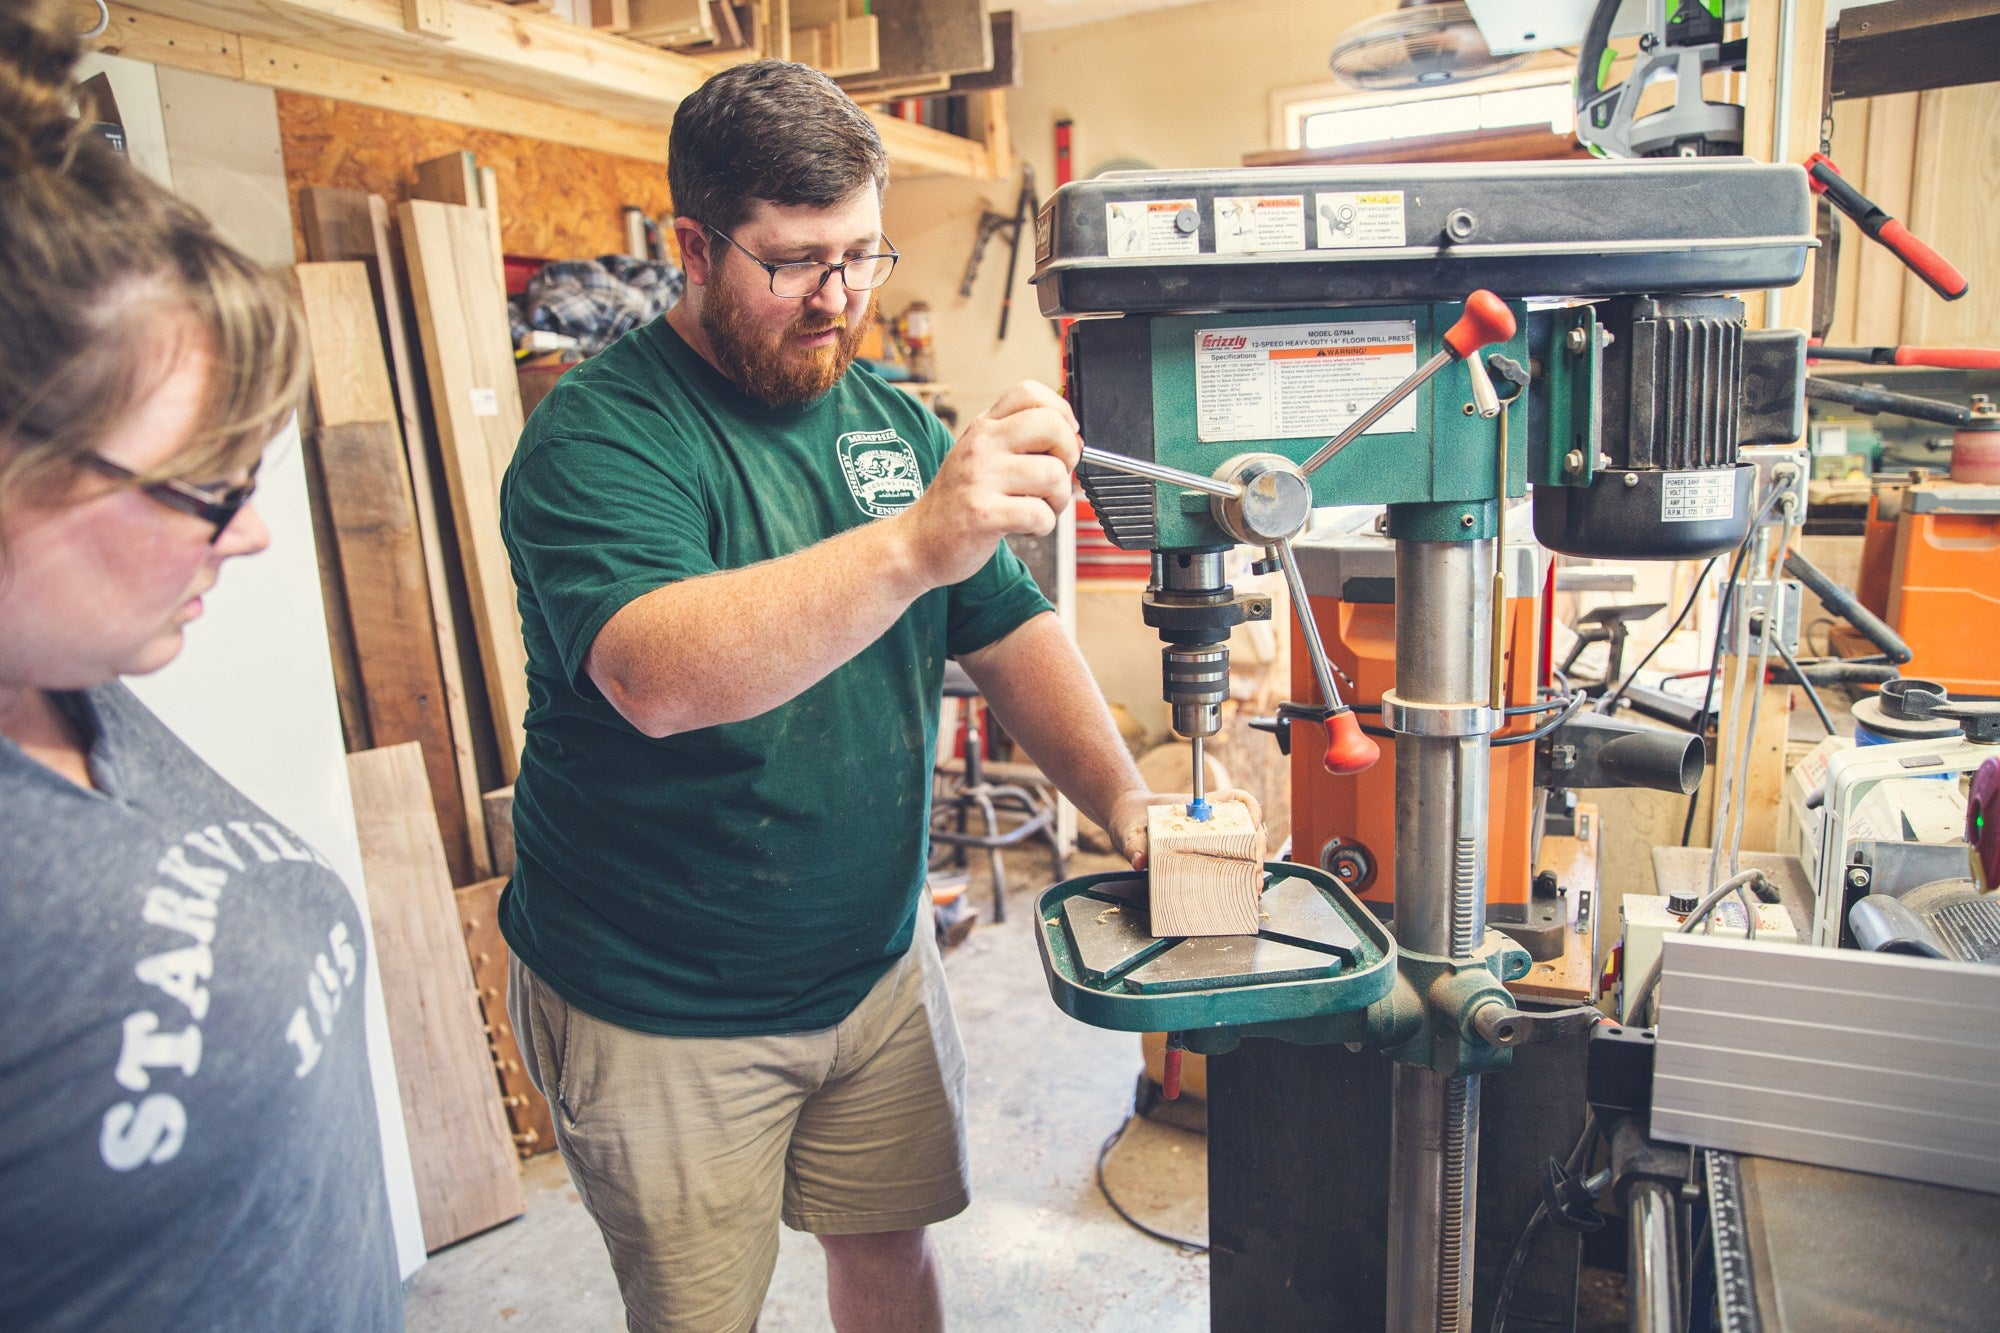 Spicer Brothers Woodworking How To Use a Drill Press with ARCHd